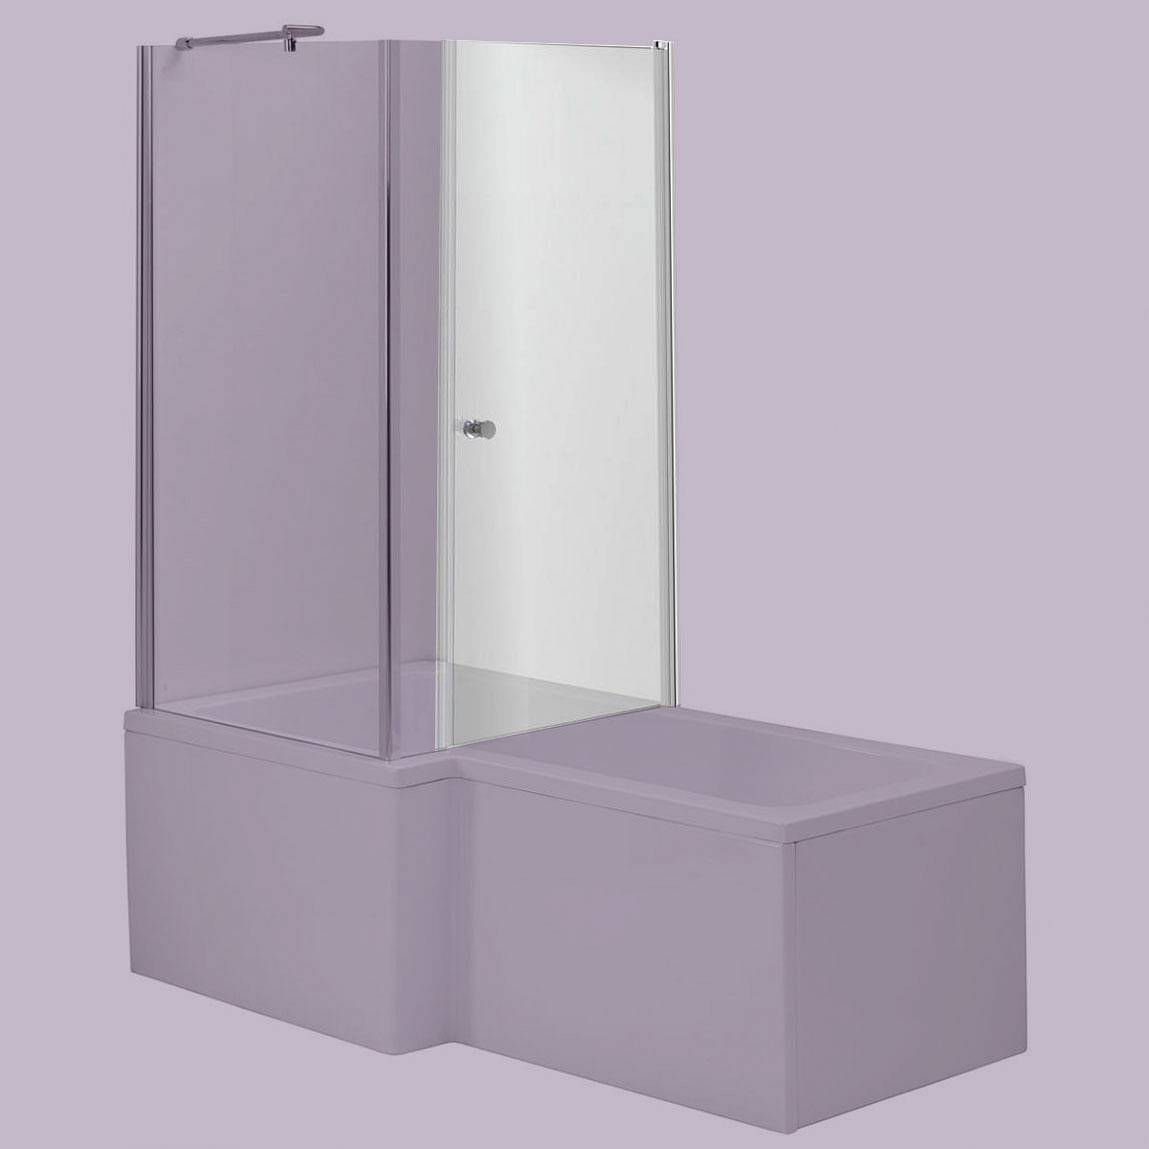 Image of 6mm Glass Door For Square Shaped Shower Bath